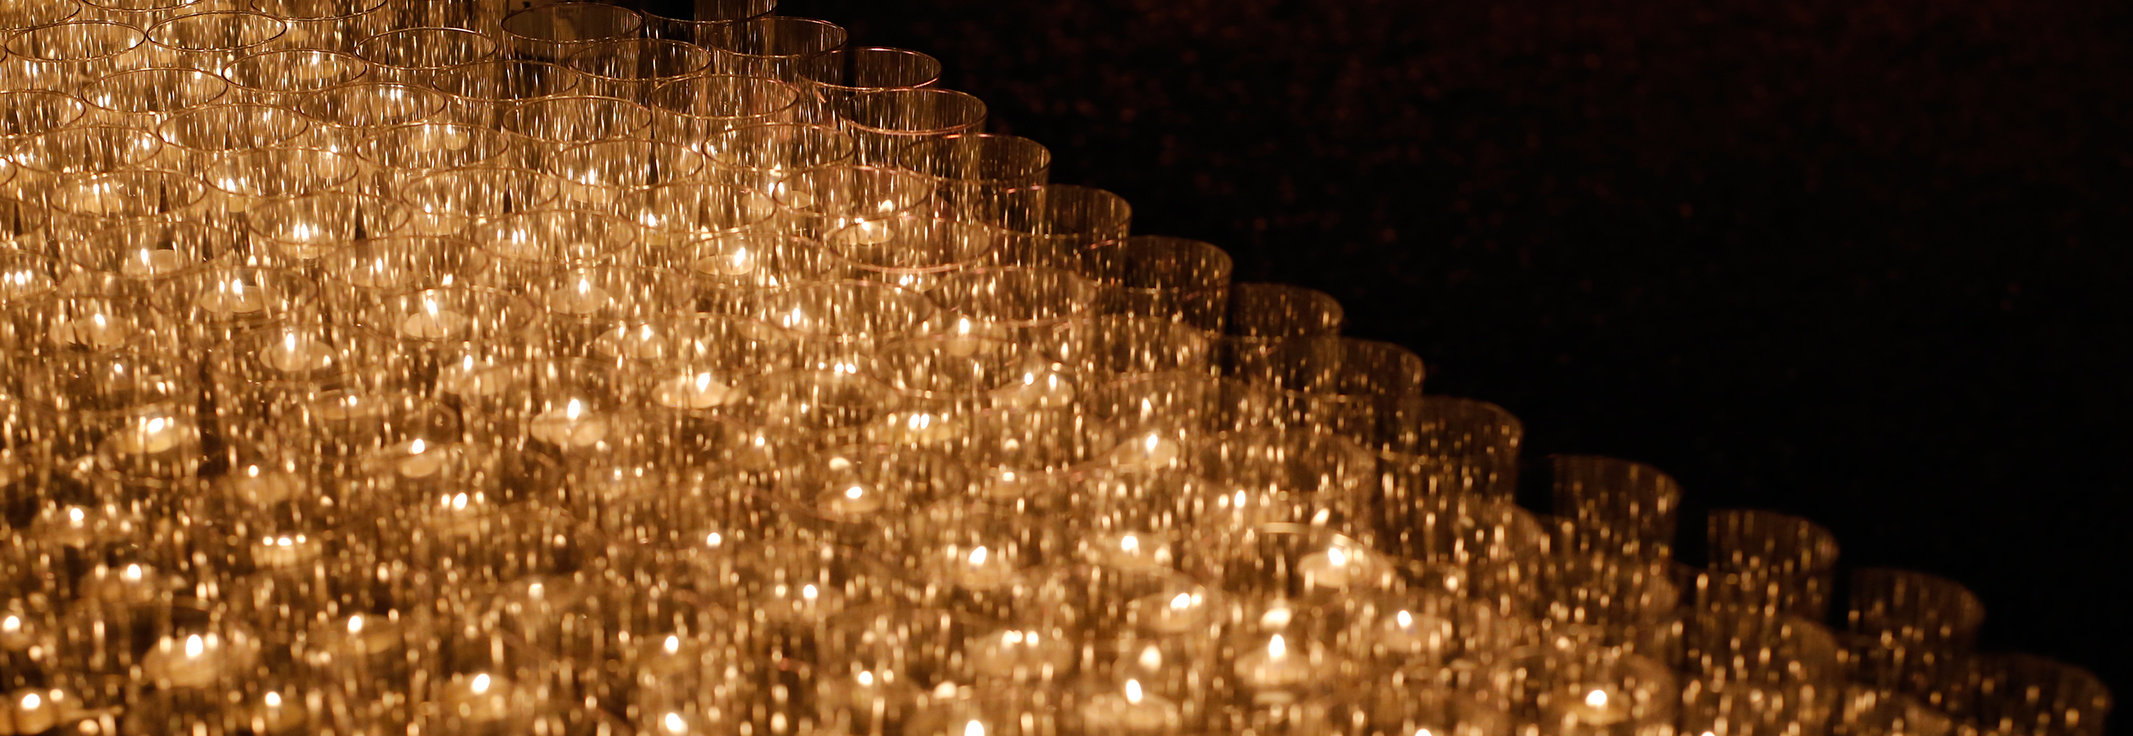 Rows of lit candles on dark background from Take Back the Night event